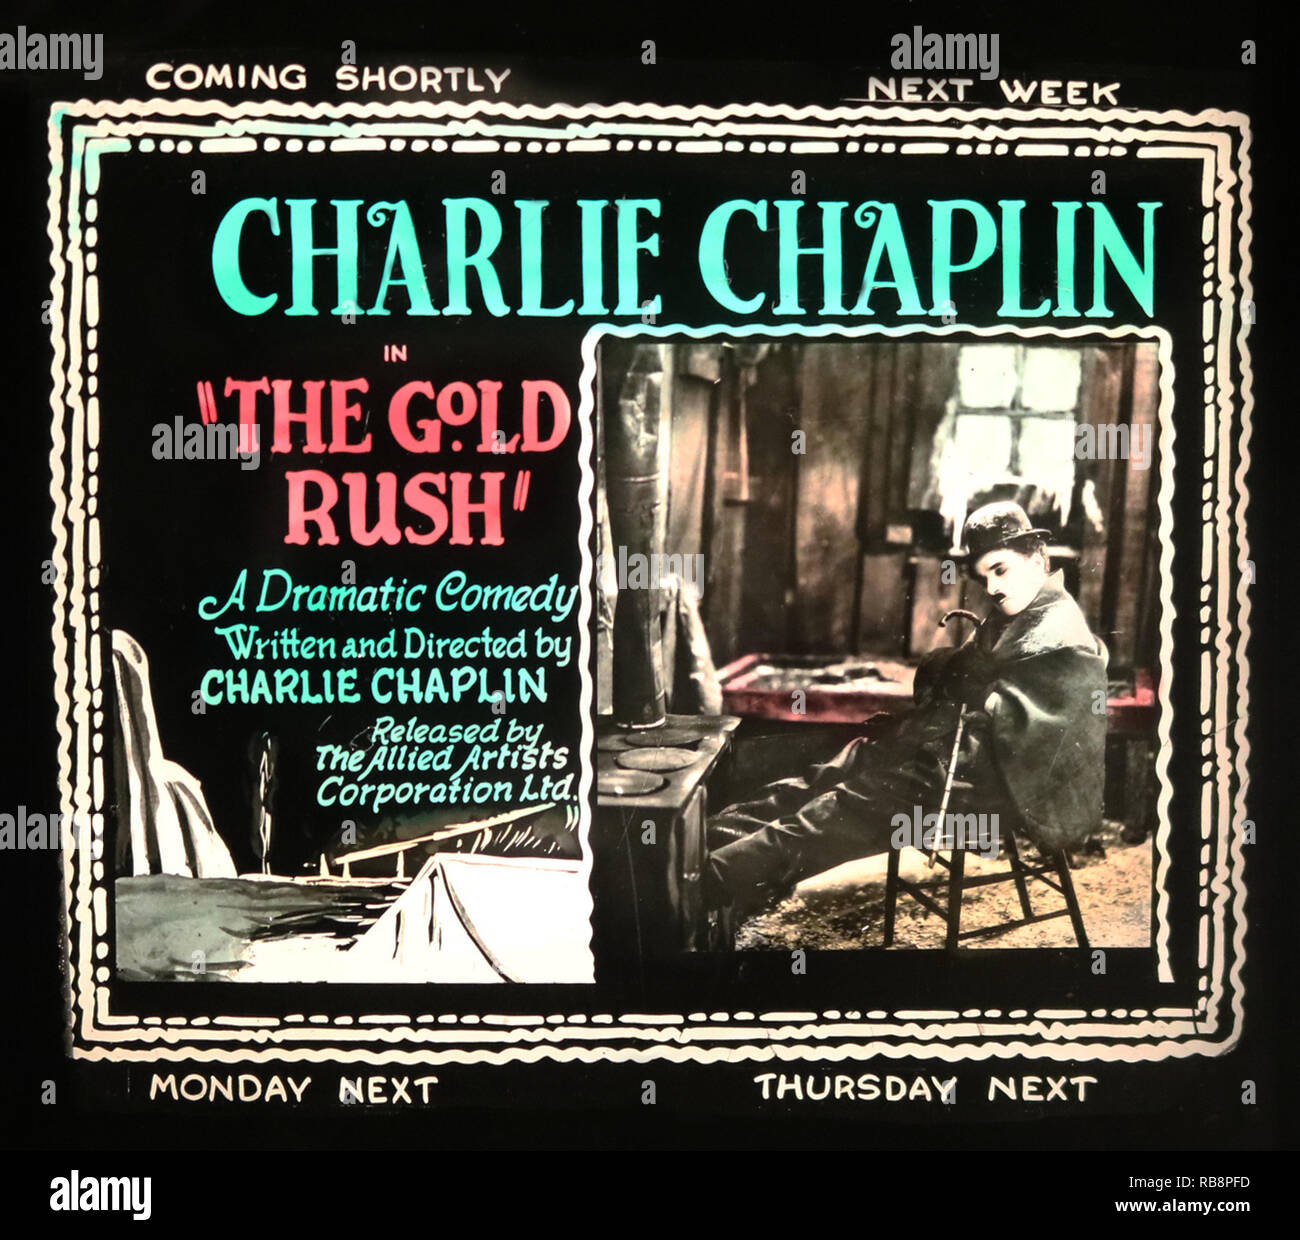 Charlie Chaplin 'The Gold Rush' movie advertisement - Stock Image